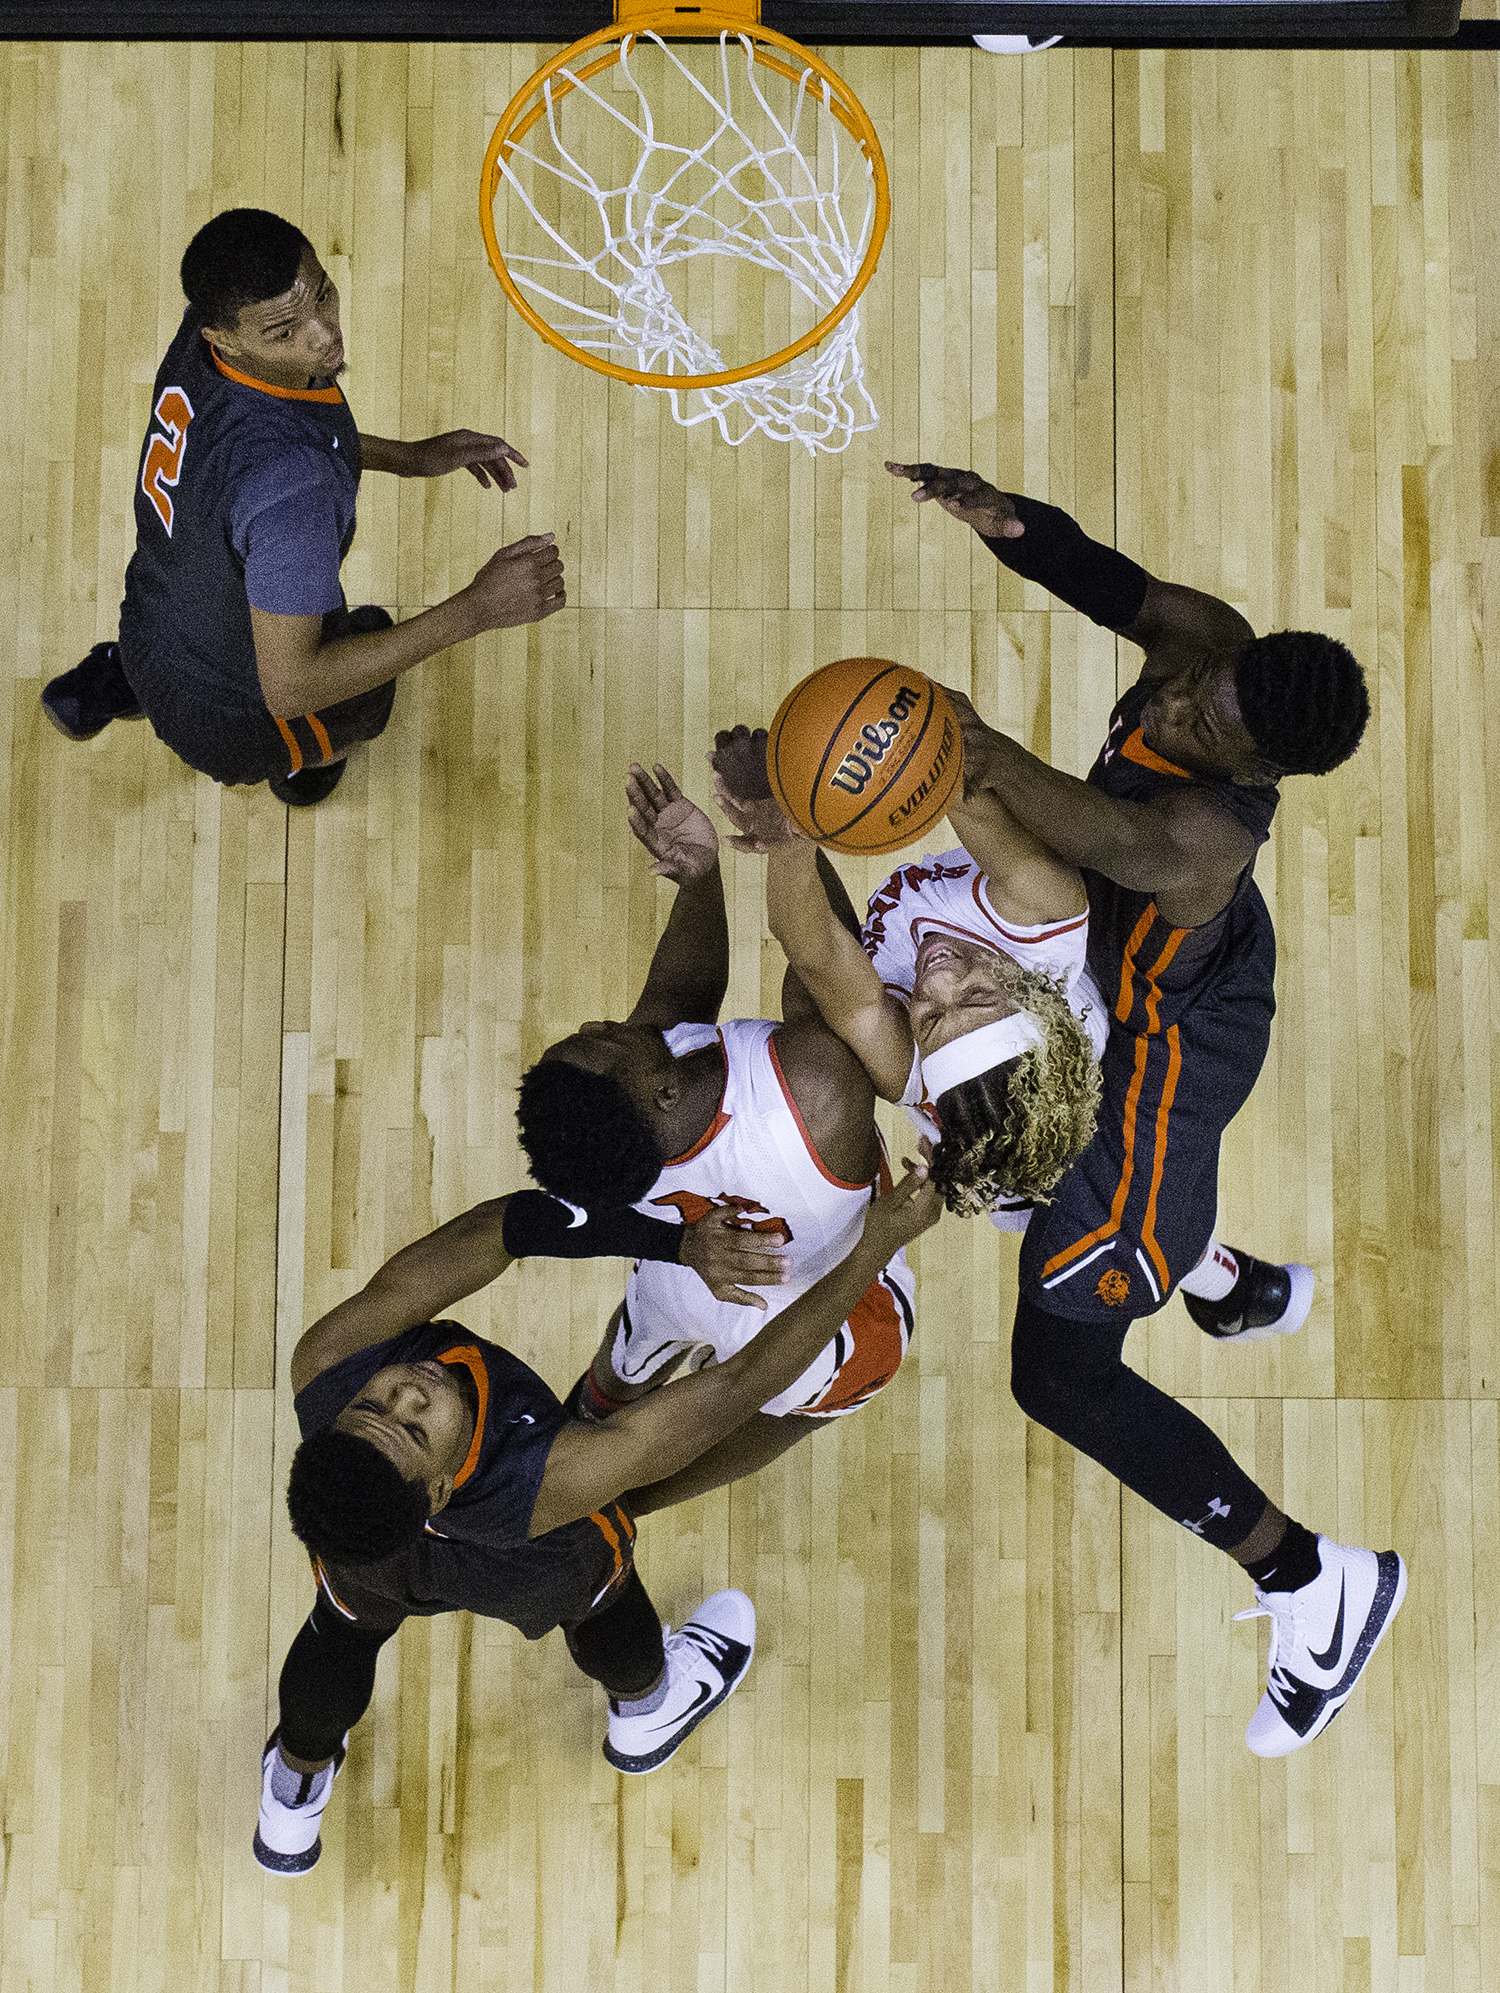 Springfield's Zaire Harris gets squeezed by the Lanphier defense as he drives to the hoop during the Boys City Tournament at the Bank of Springfield Center Thursday, Jan. 18, 2018. [Ted Schurter/The State Journal-Register]